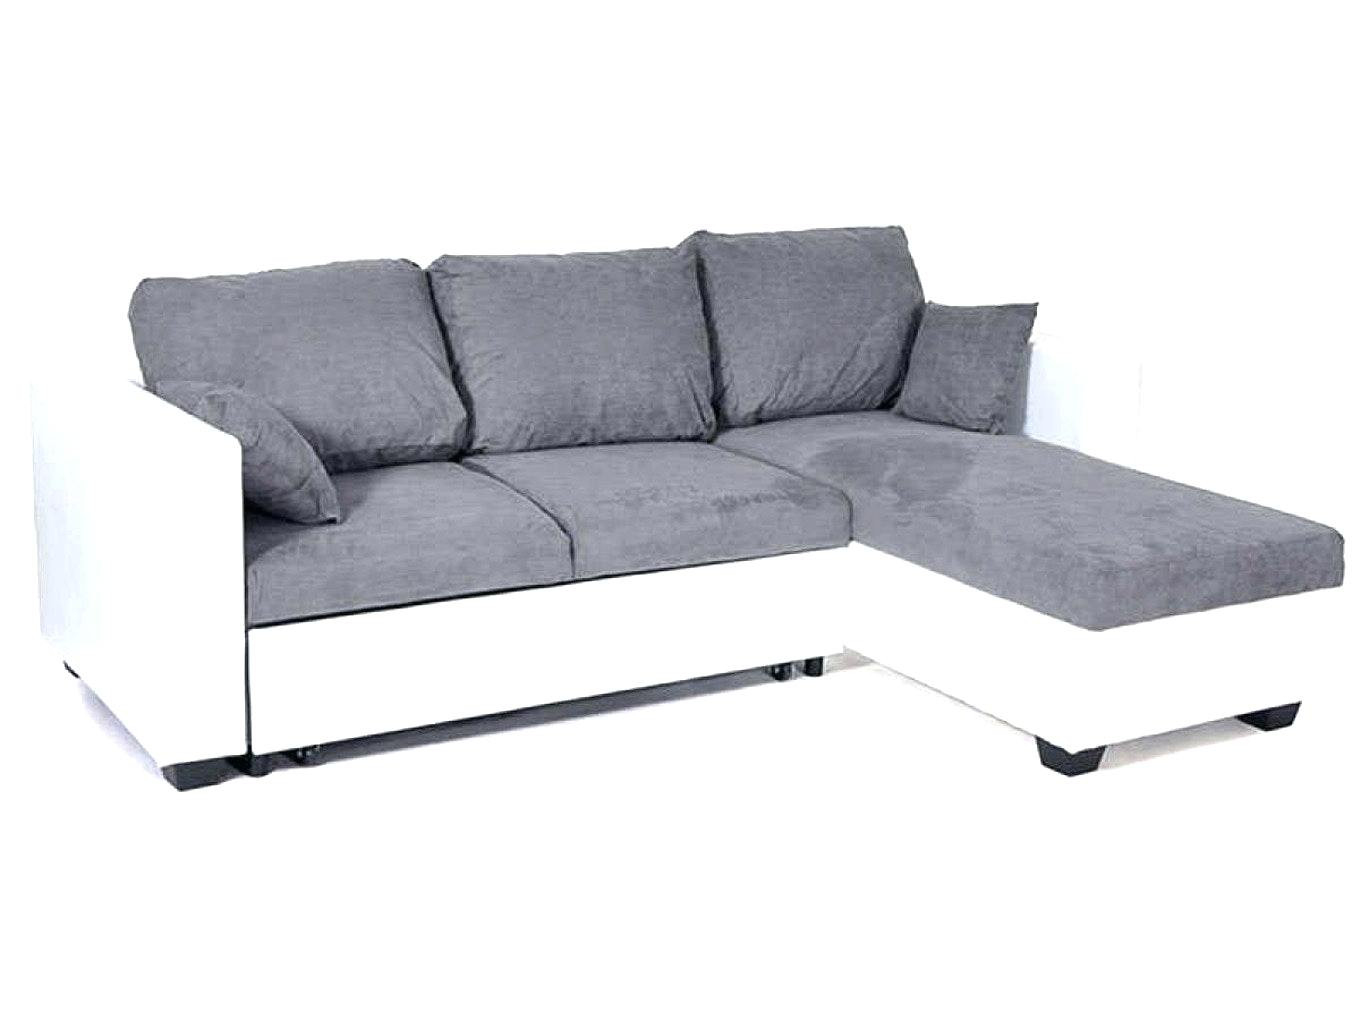 Canapé Cuir Convertible Ikea Luxe Stock Canap Convertible 3 Places Conforama 6 Cuir 1 Avec S Et Full